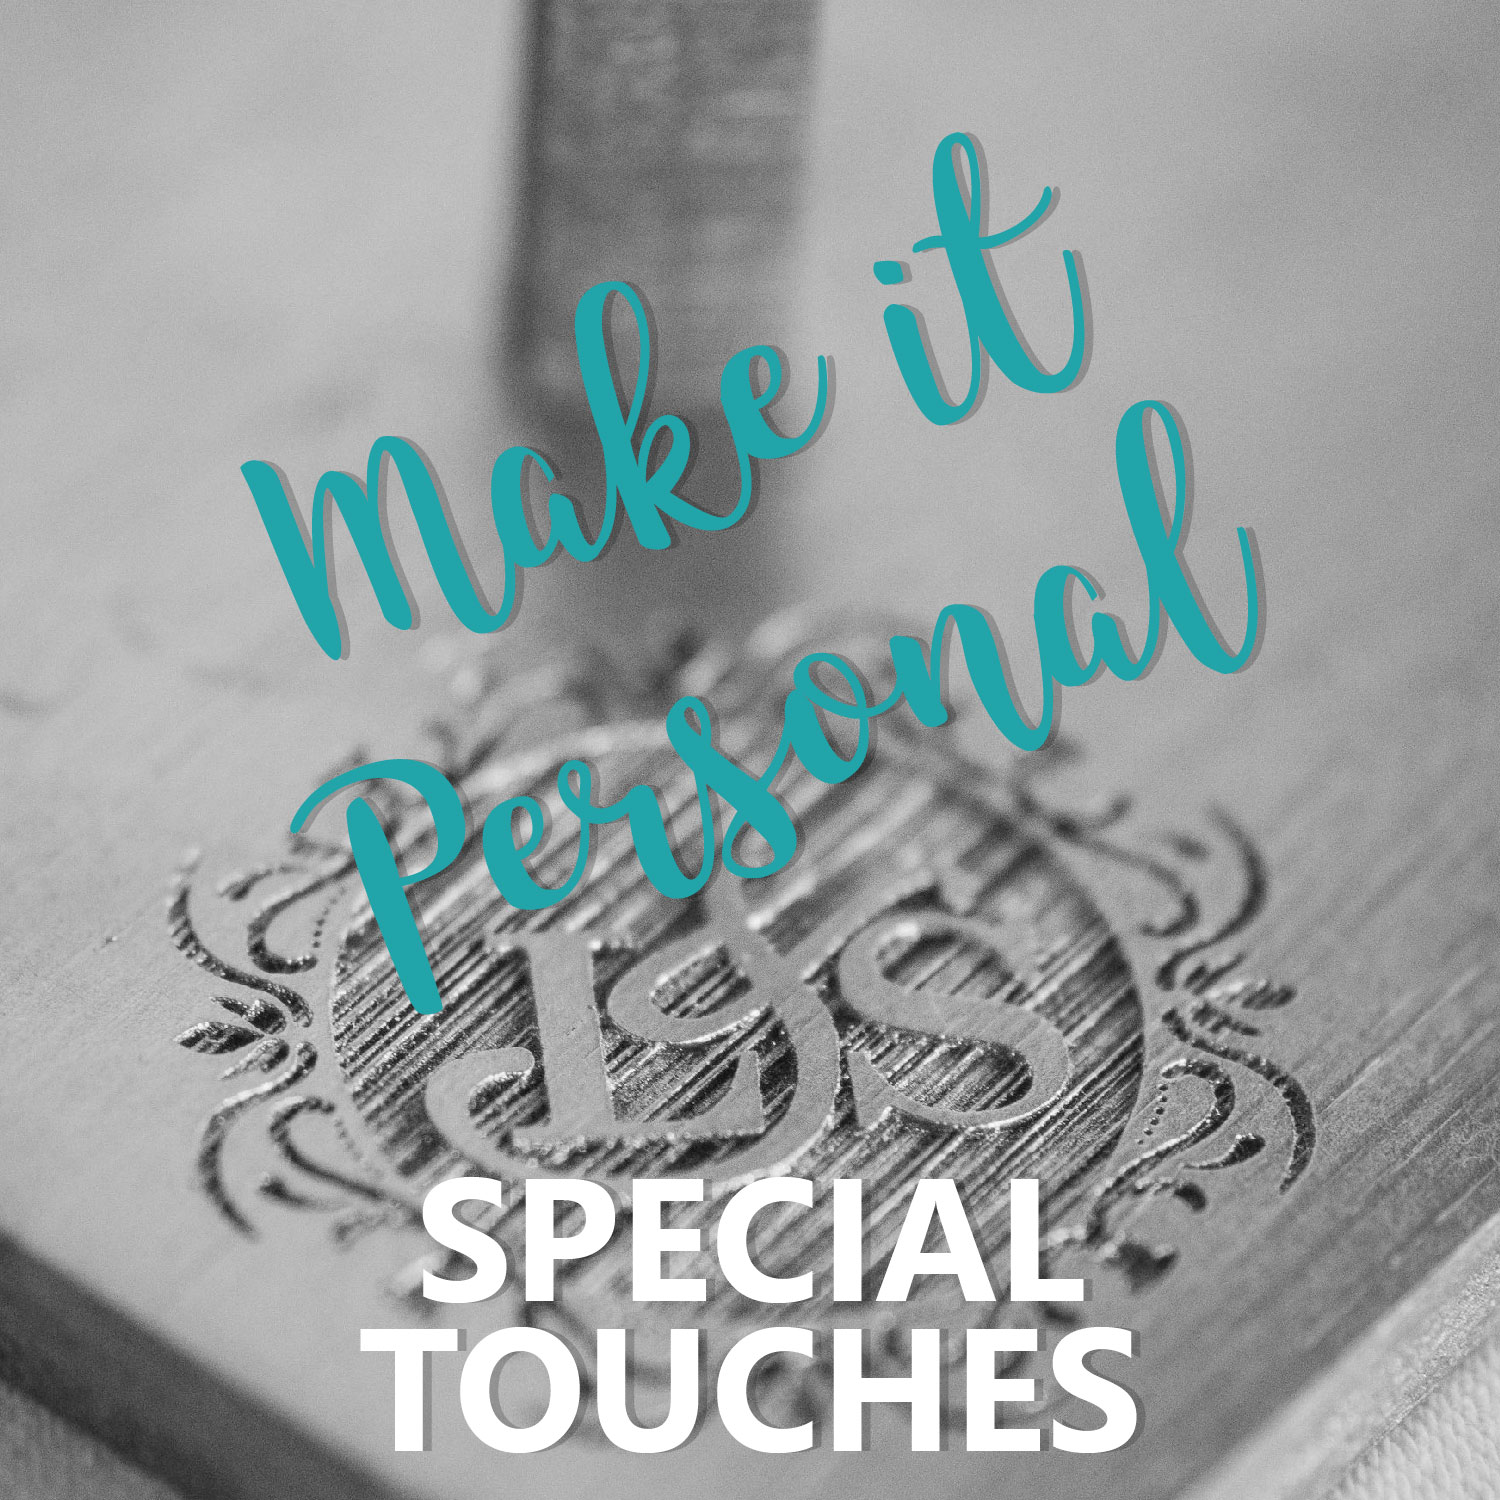 11 SPECIAL TOUCHES - Special Details